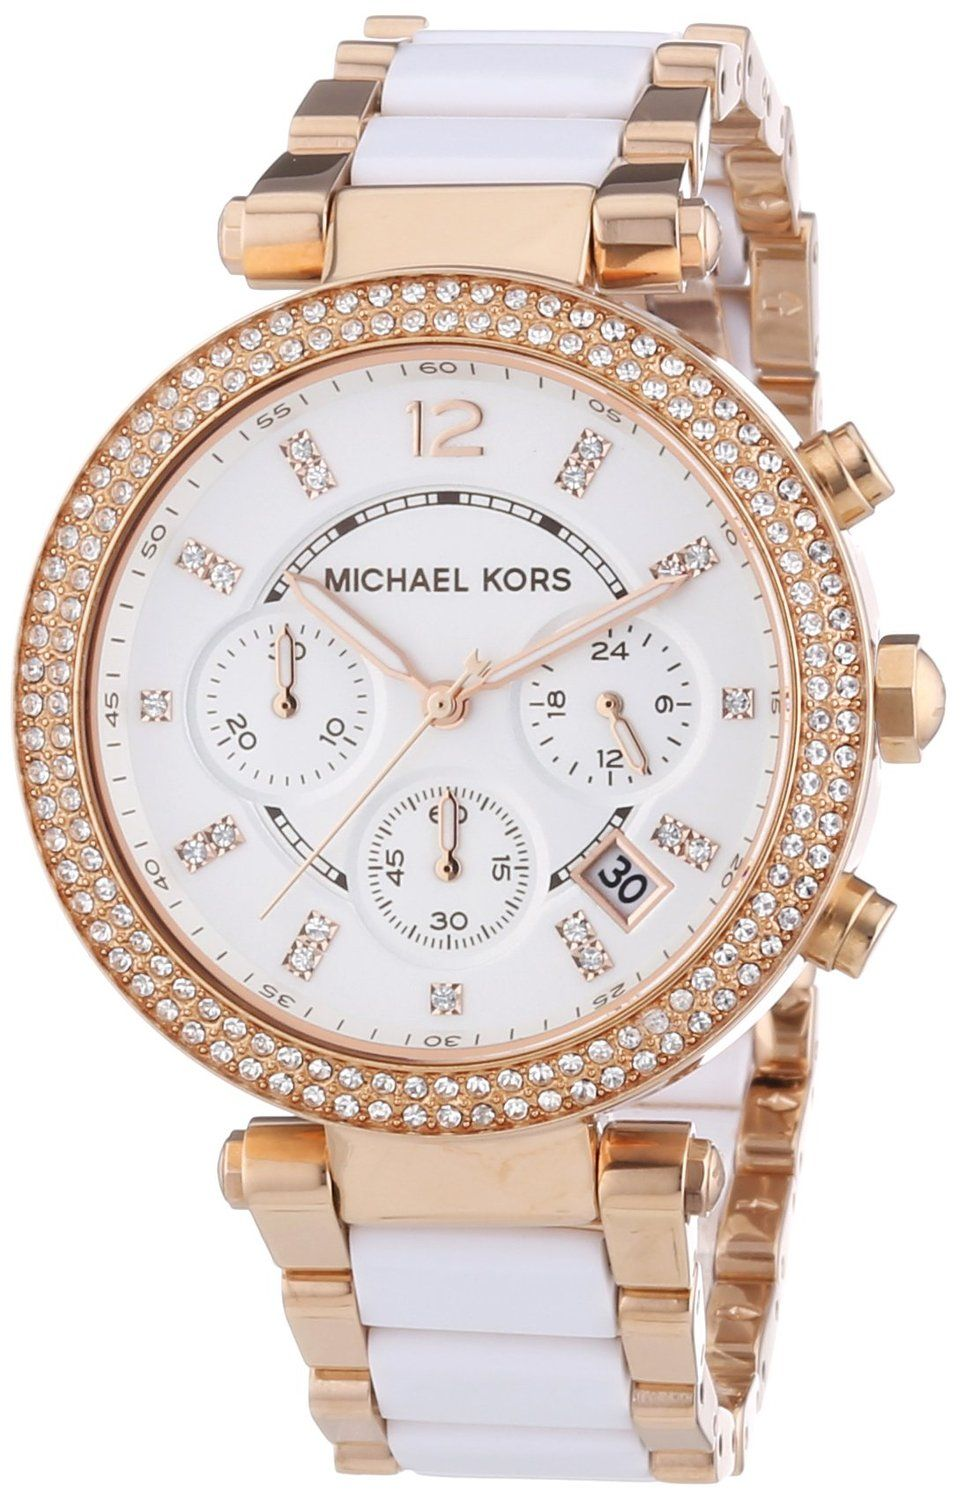 Michael Kors Watches Parker Watch (White/Rose Gold) Michael Kors Mid-Size  White Acetate and Rose Gold Tone Stainless Steel Parker Chronograph Glitz  Watch